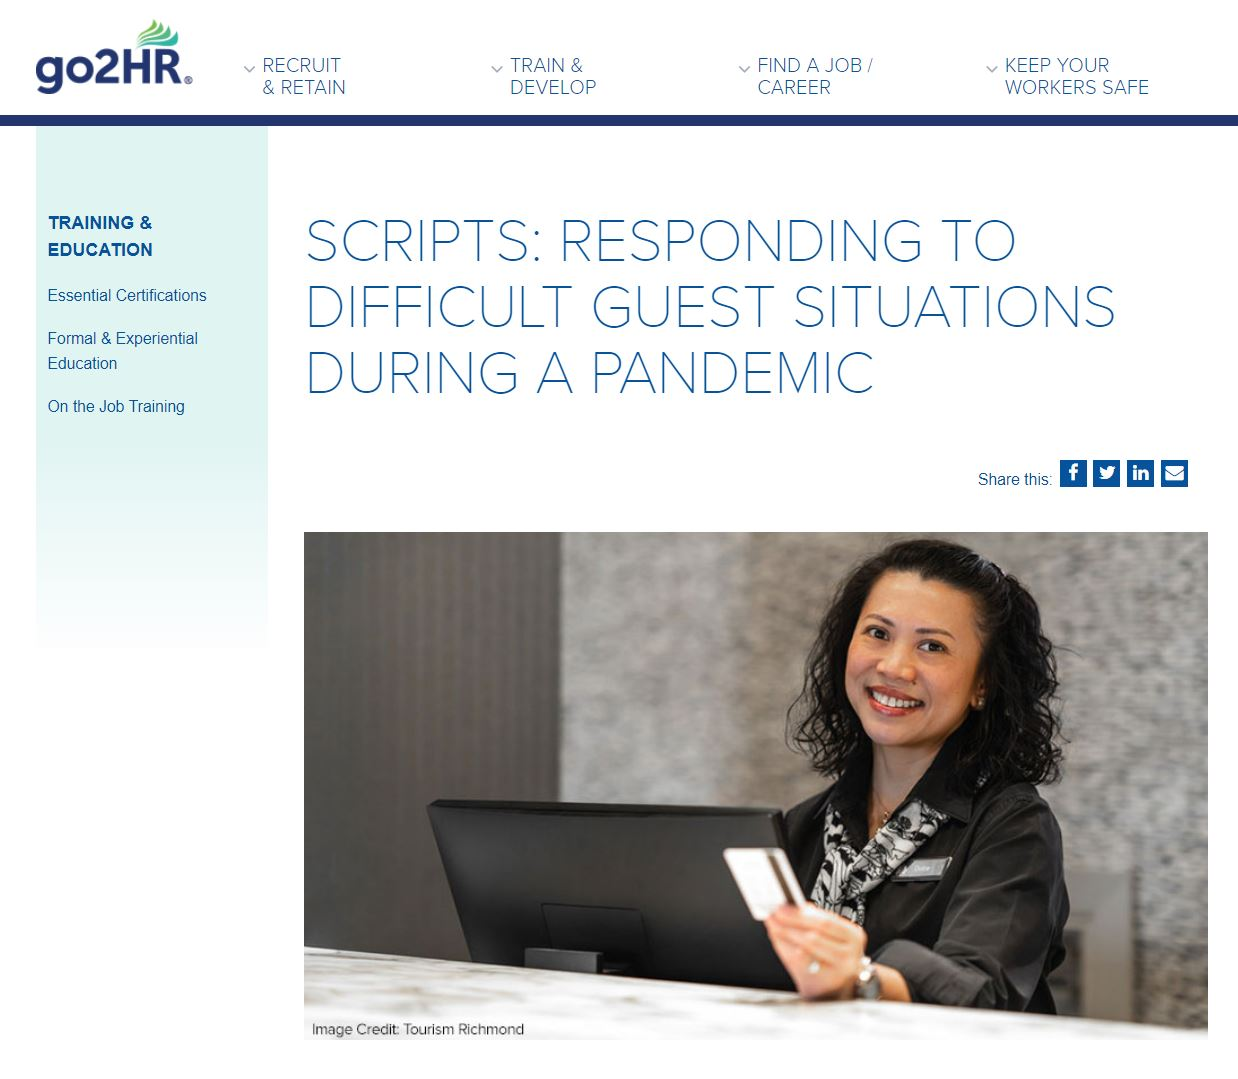 go2HR's Frontline Staff Scripts: Responding to Difficult Guest Situations During a Pandemic